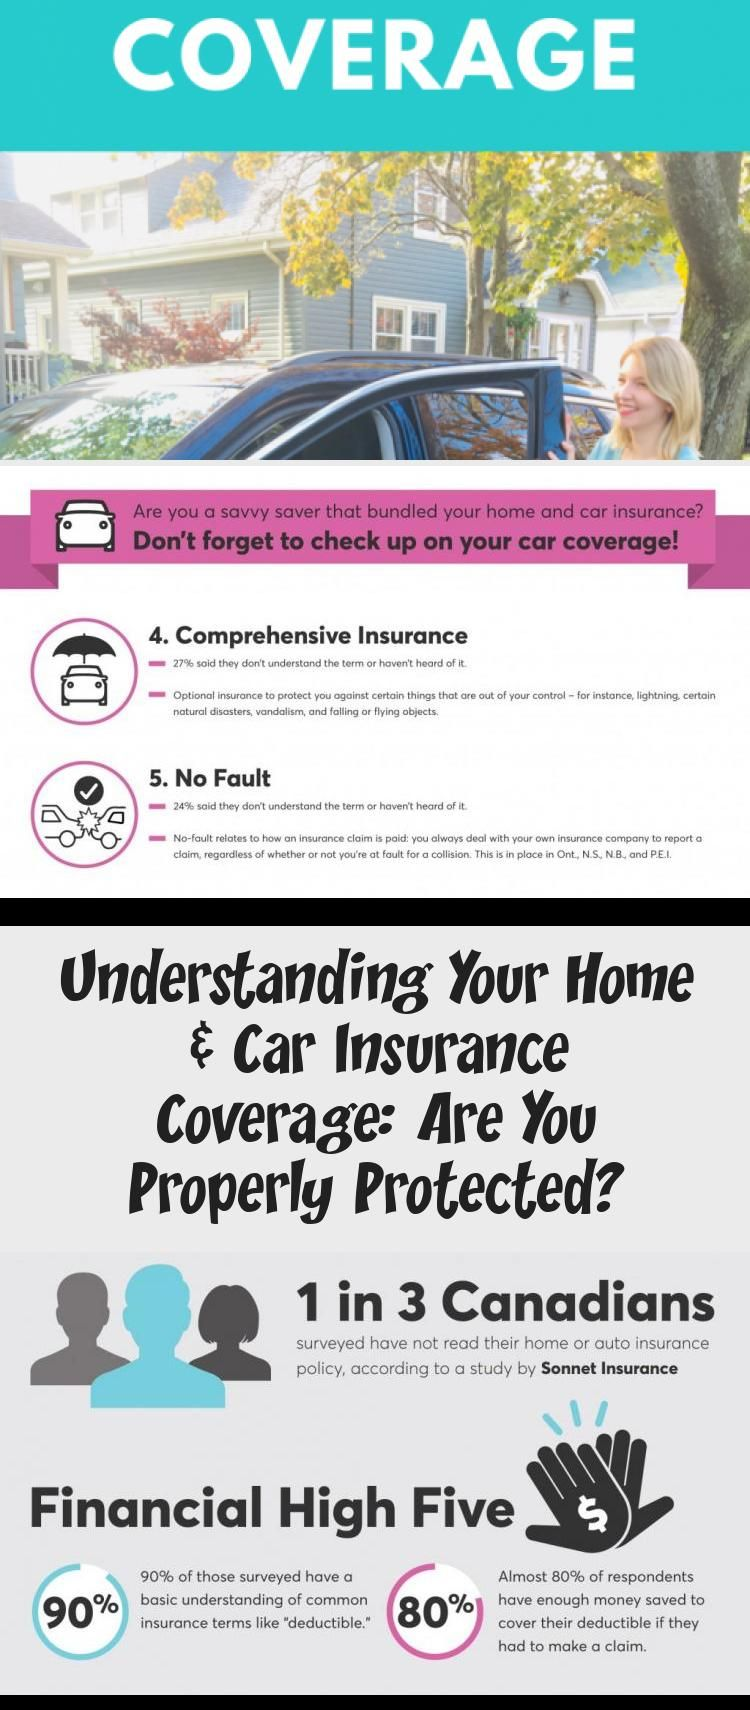 Understanding Your Home Car Insurance Coverage Are You Properly